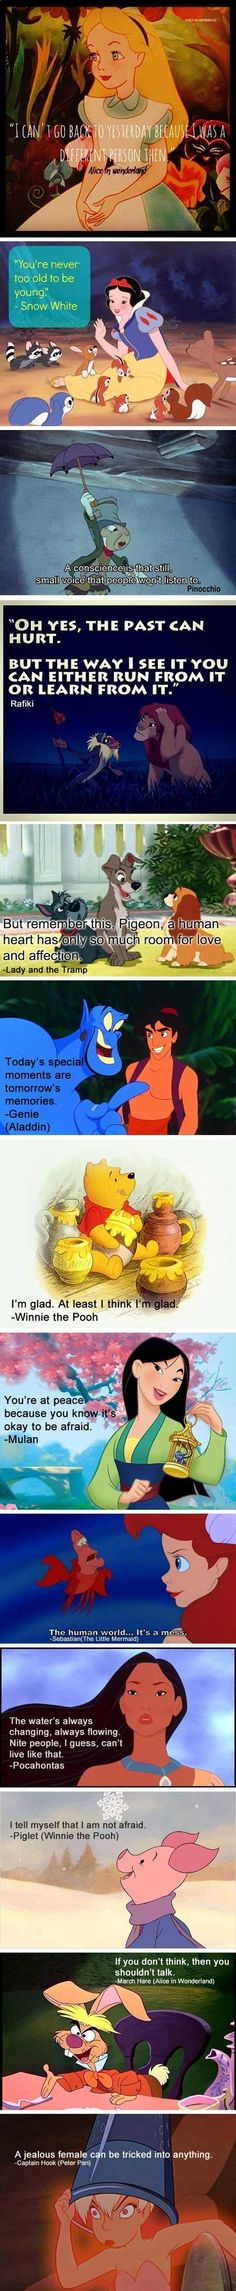 Disney movies quotes. Who knew we were getting so inspired as kids?